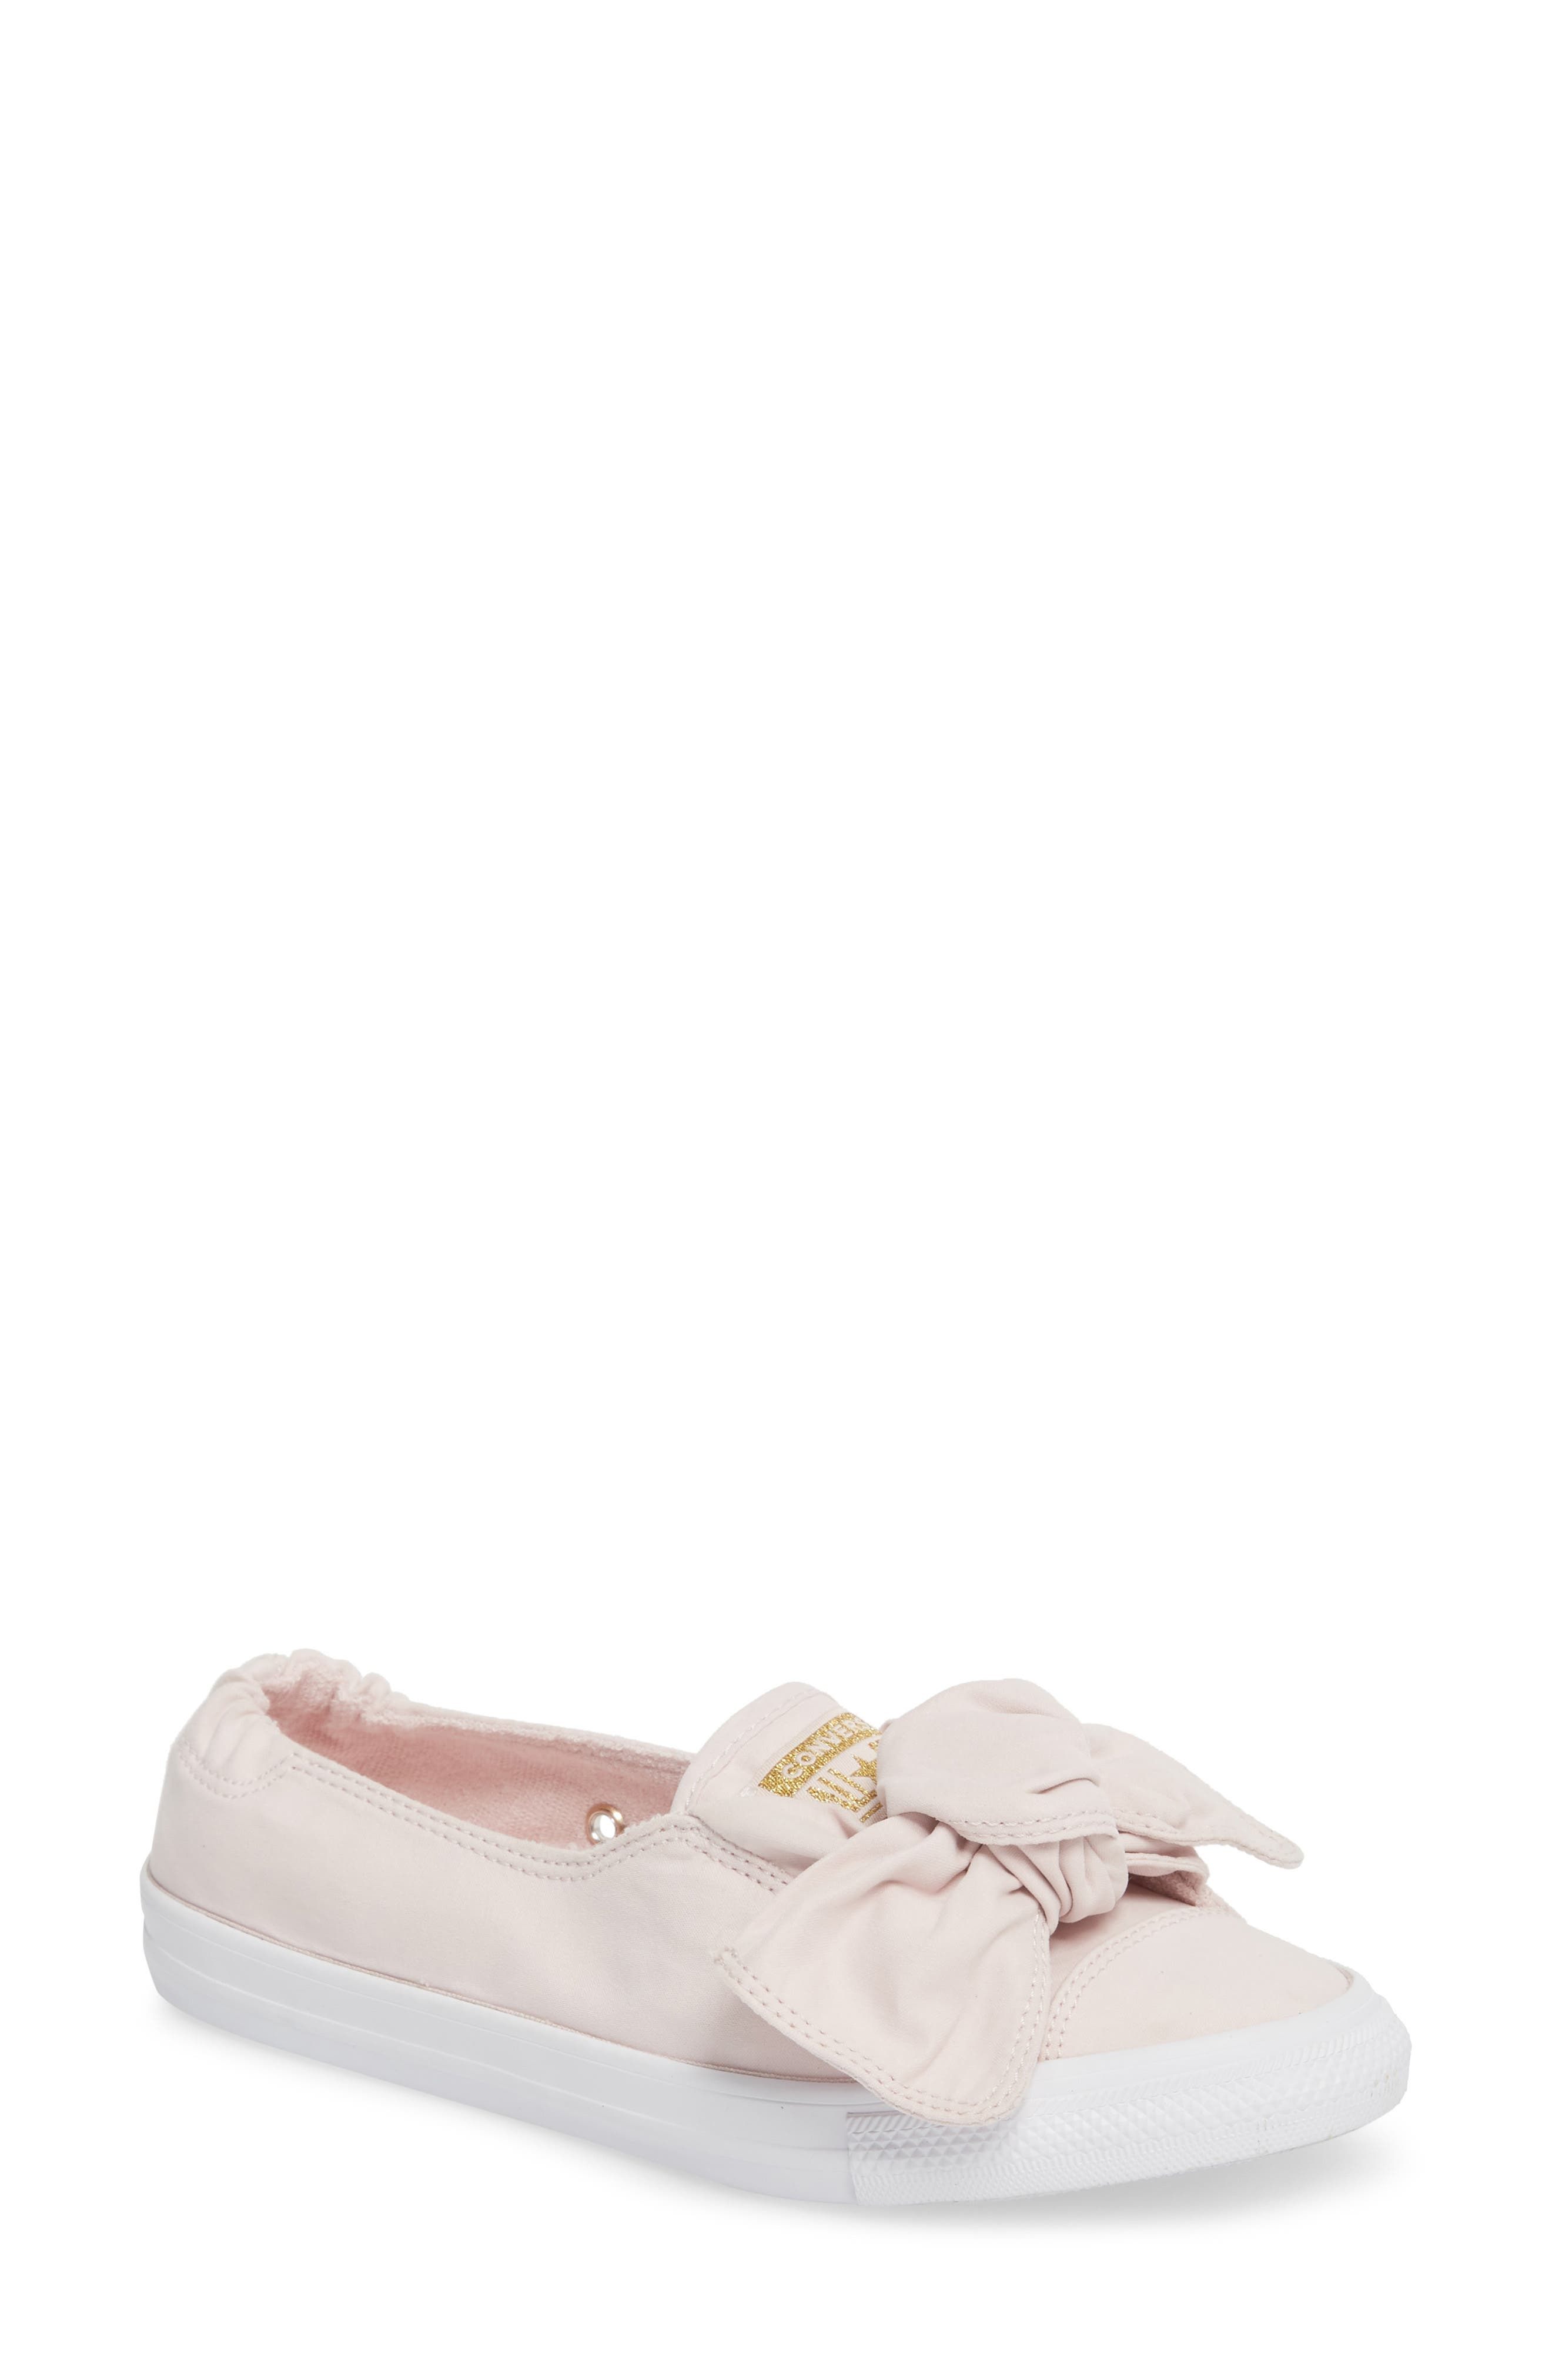 Chuck Taylor <sup>®</sup> All Star<sup>®</sup> Knot Slip-On Sneaker,                             Main thumbnail 1, color,                             Barely Rose